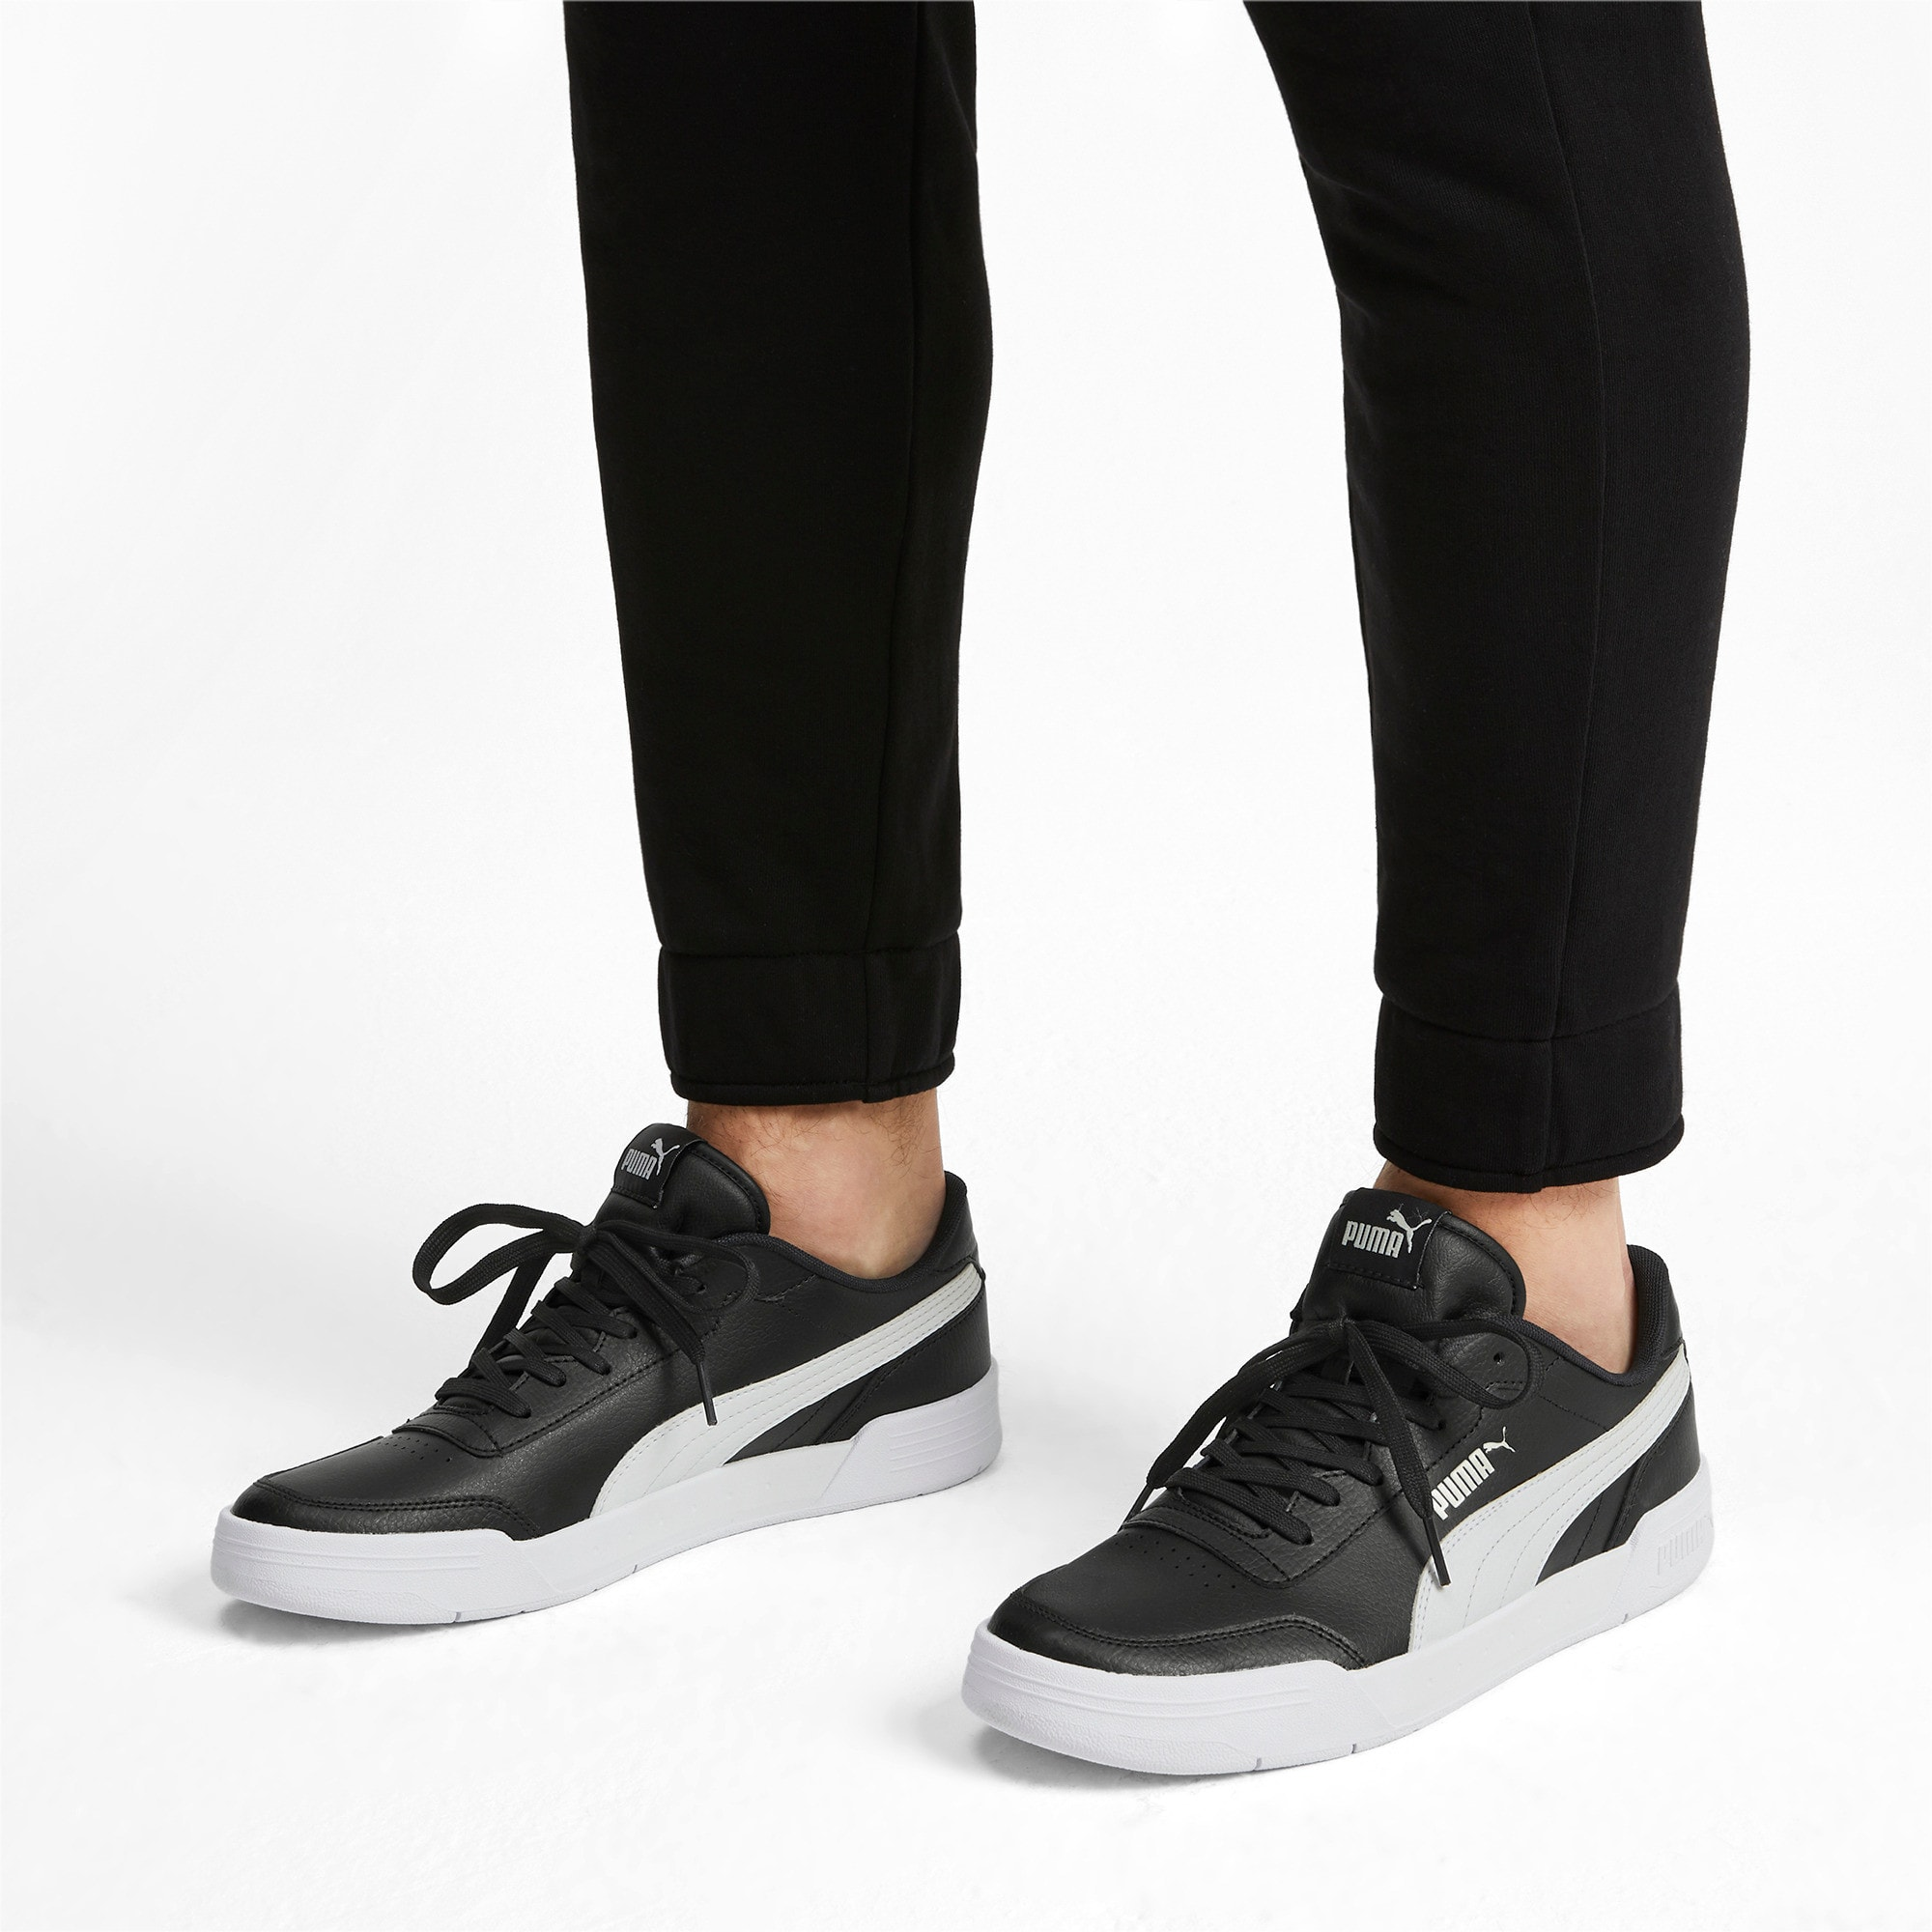 Thumbnail 2 of Caracal Sneakers, Puma Black-Puma White, medium